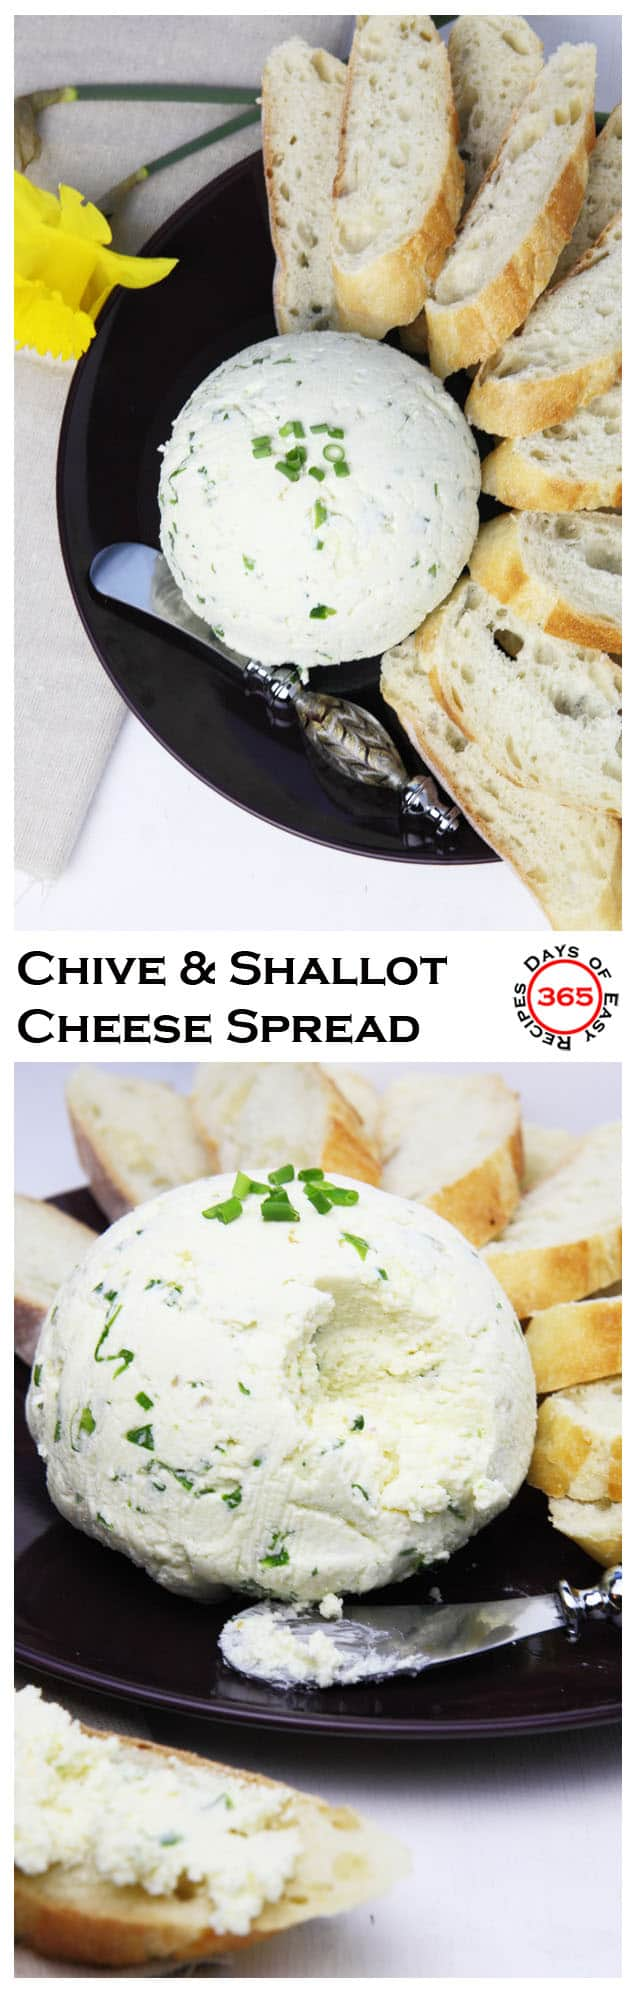 Chive & Shallot Cheese Spread is perfect on crackers or bread. An easy party appetizer.